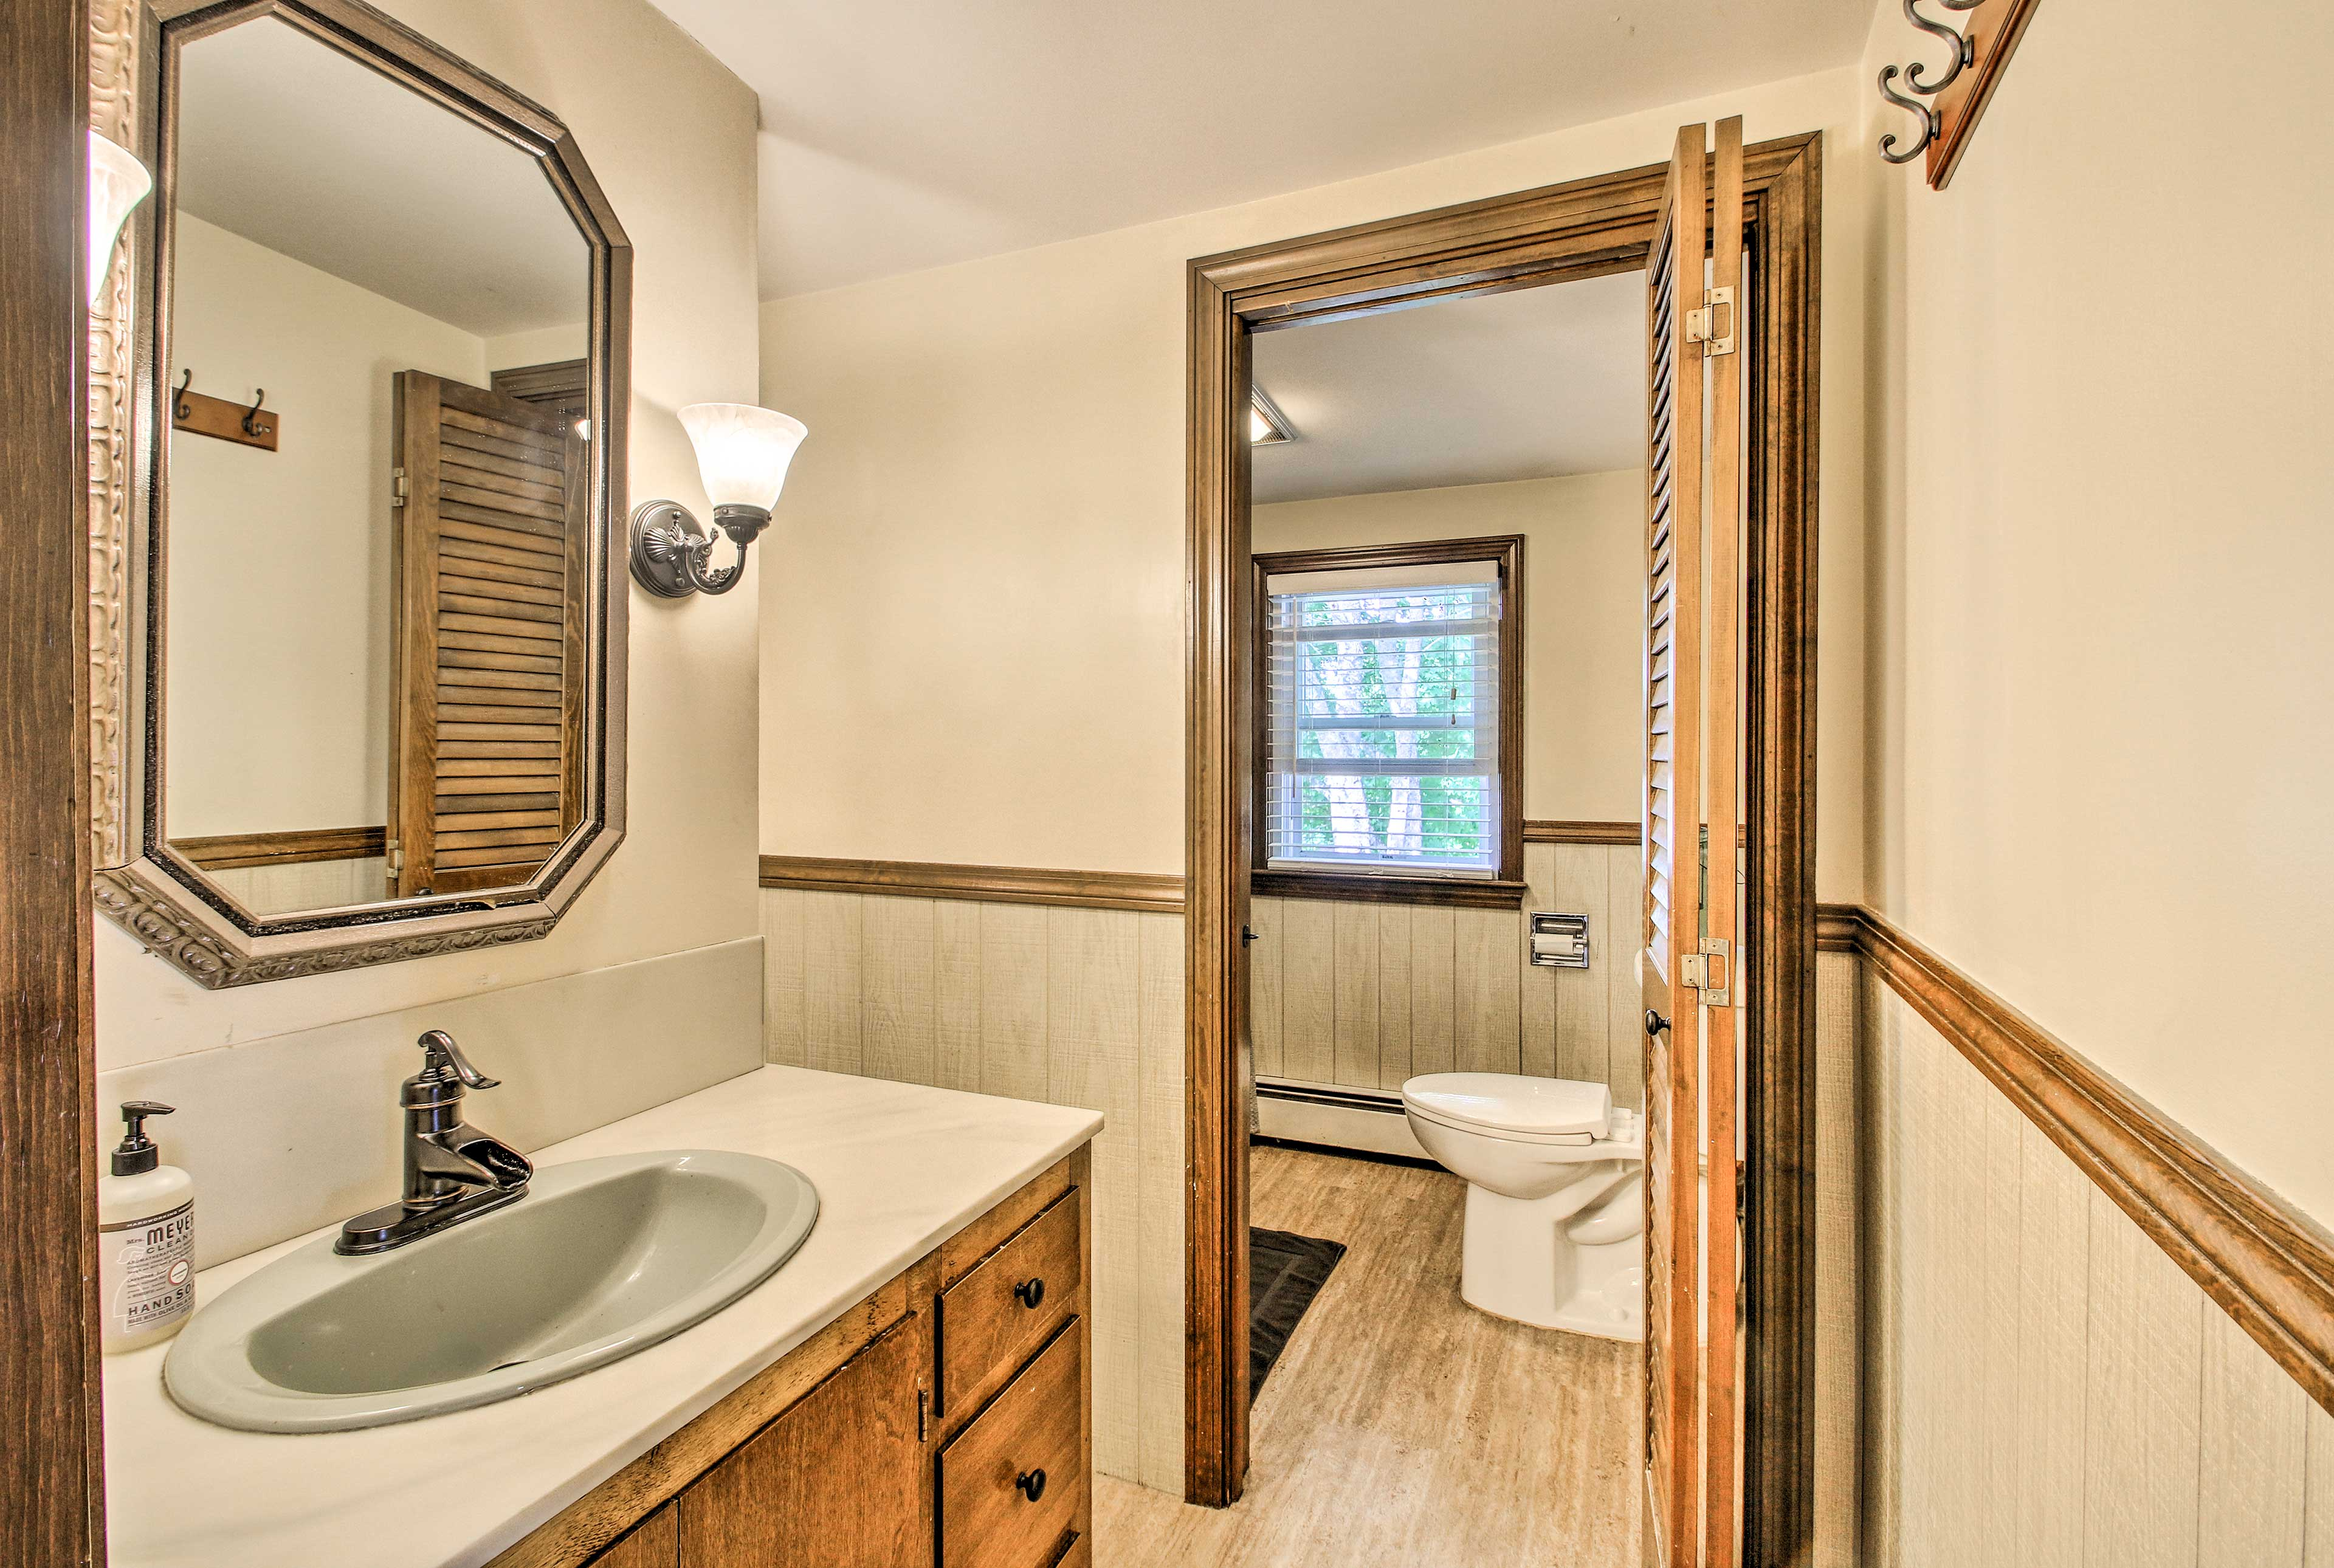 A second full bathroom can be found on the second floor.